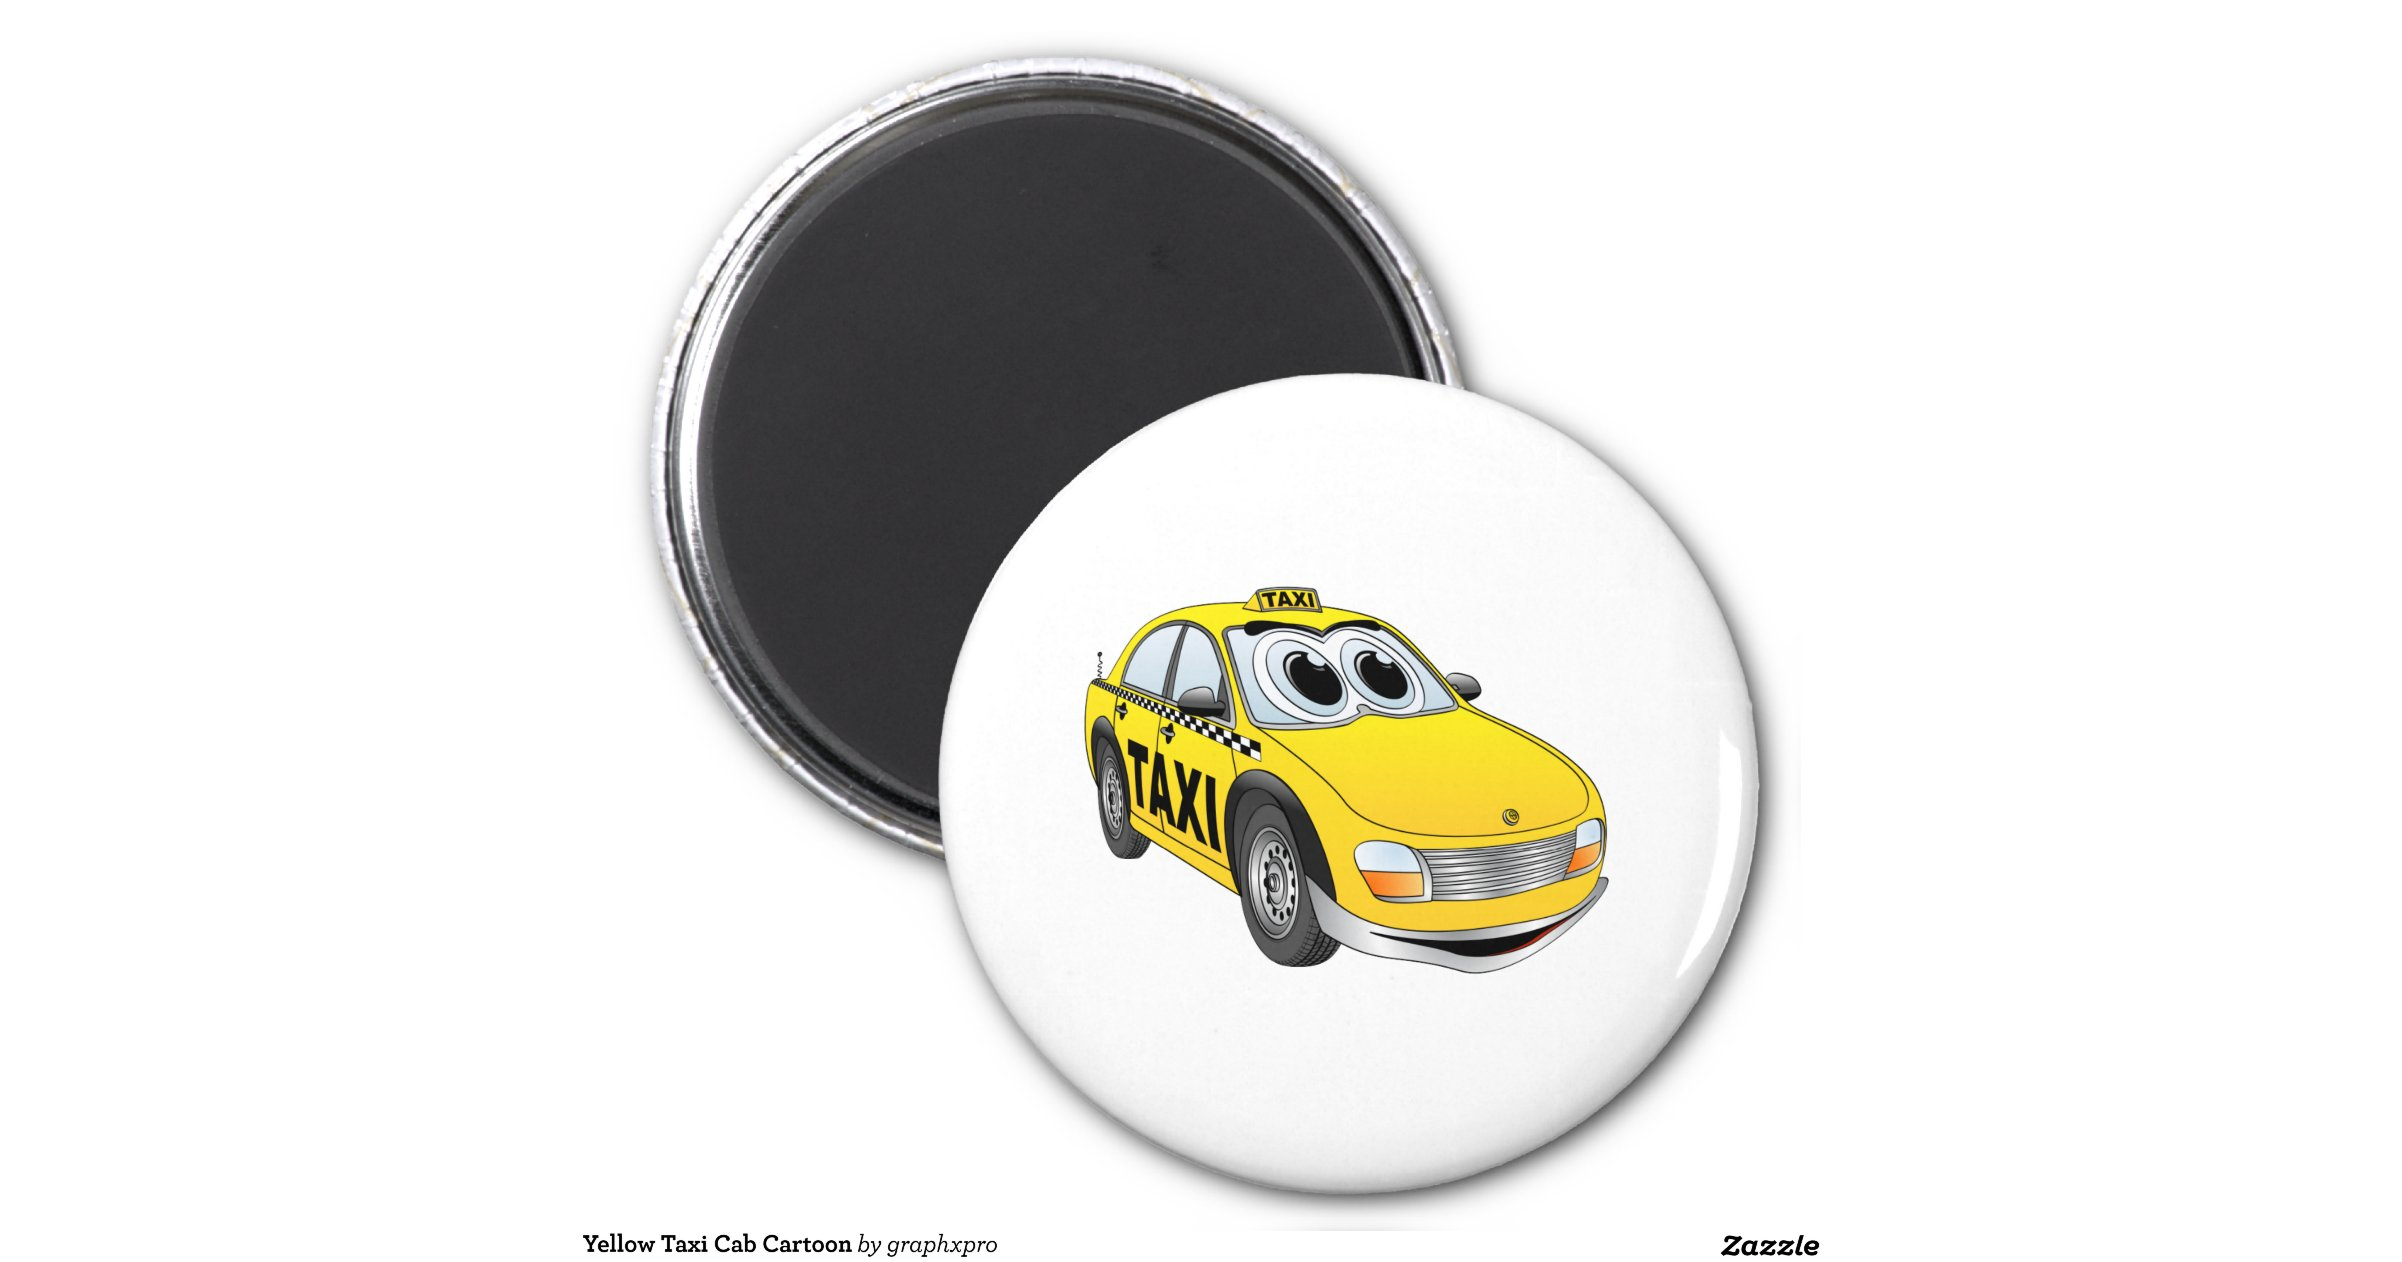 yellow taxi cab cartoon 6 cm round magnet zazzle. Black Bedroom Furniture Sets. Home Design Ideas